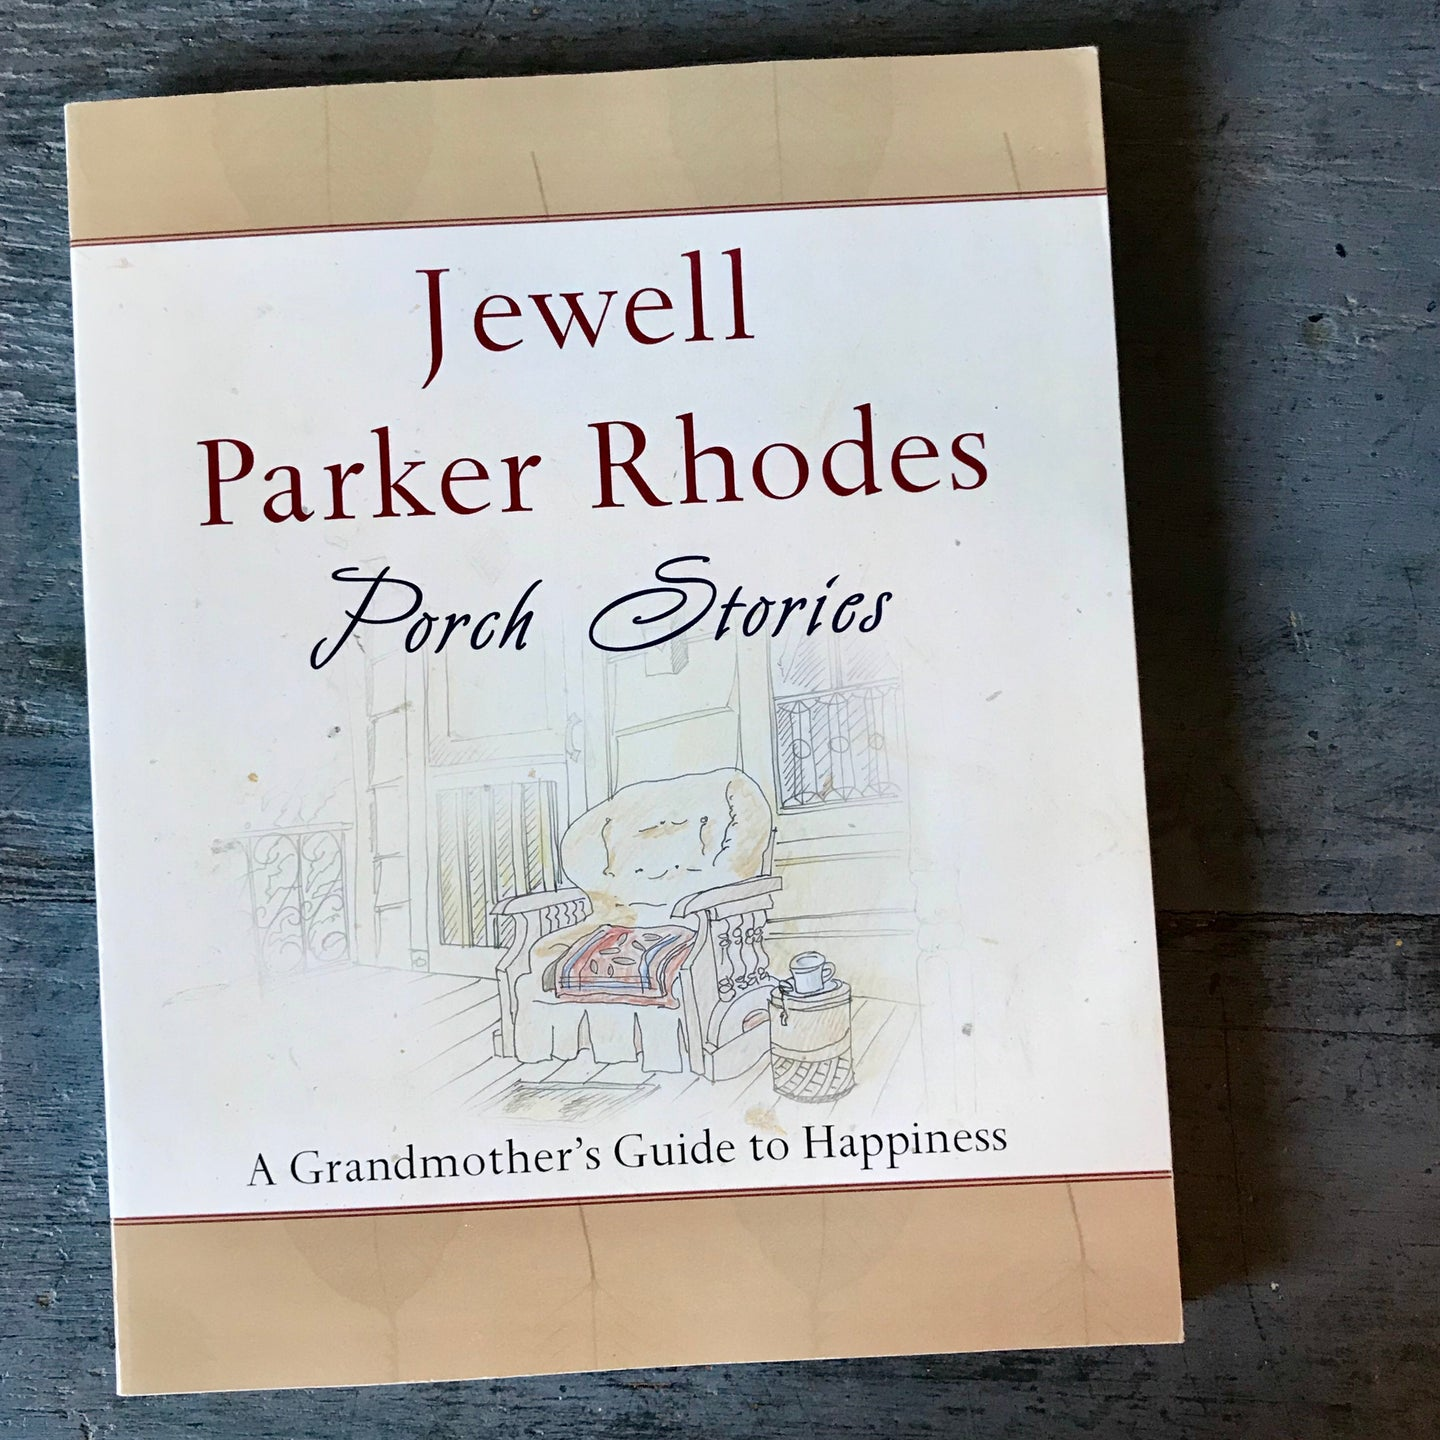 Porch Stories A Grandmother's Guide to Happiness - Jewell Parker Rhodes - 2008